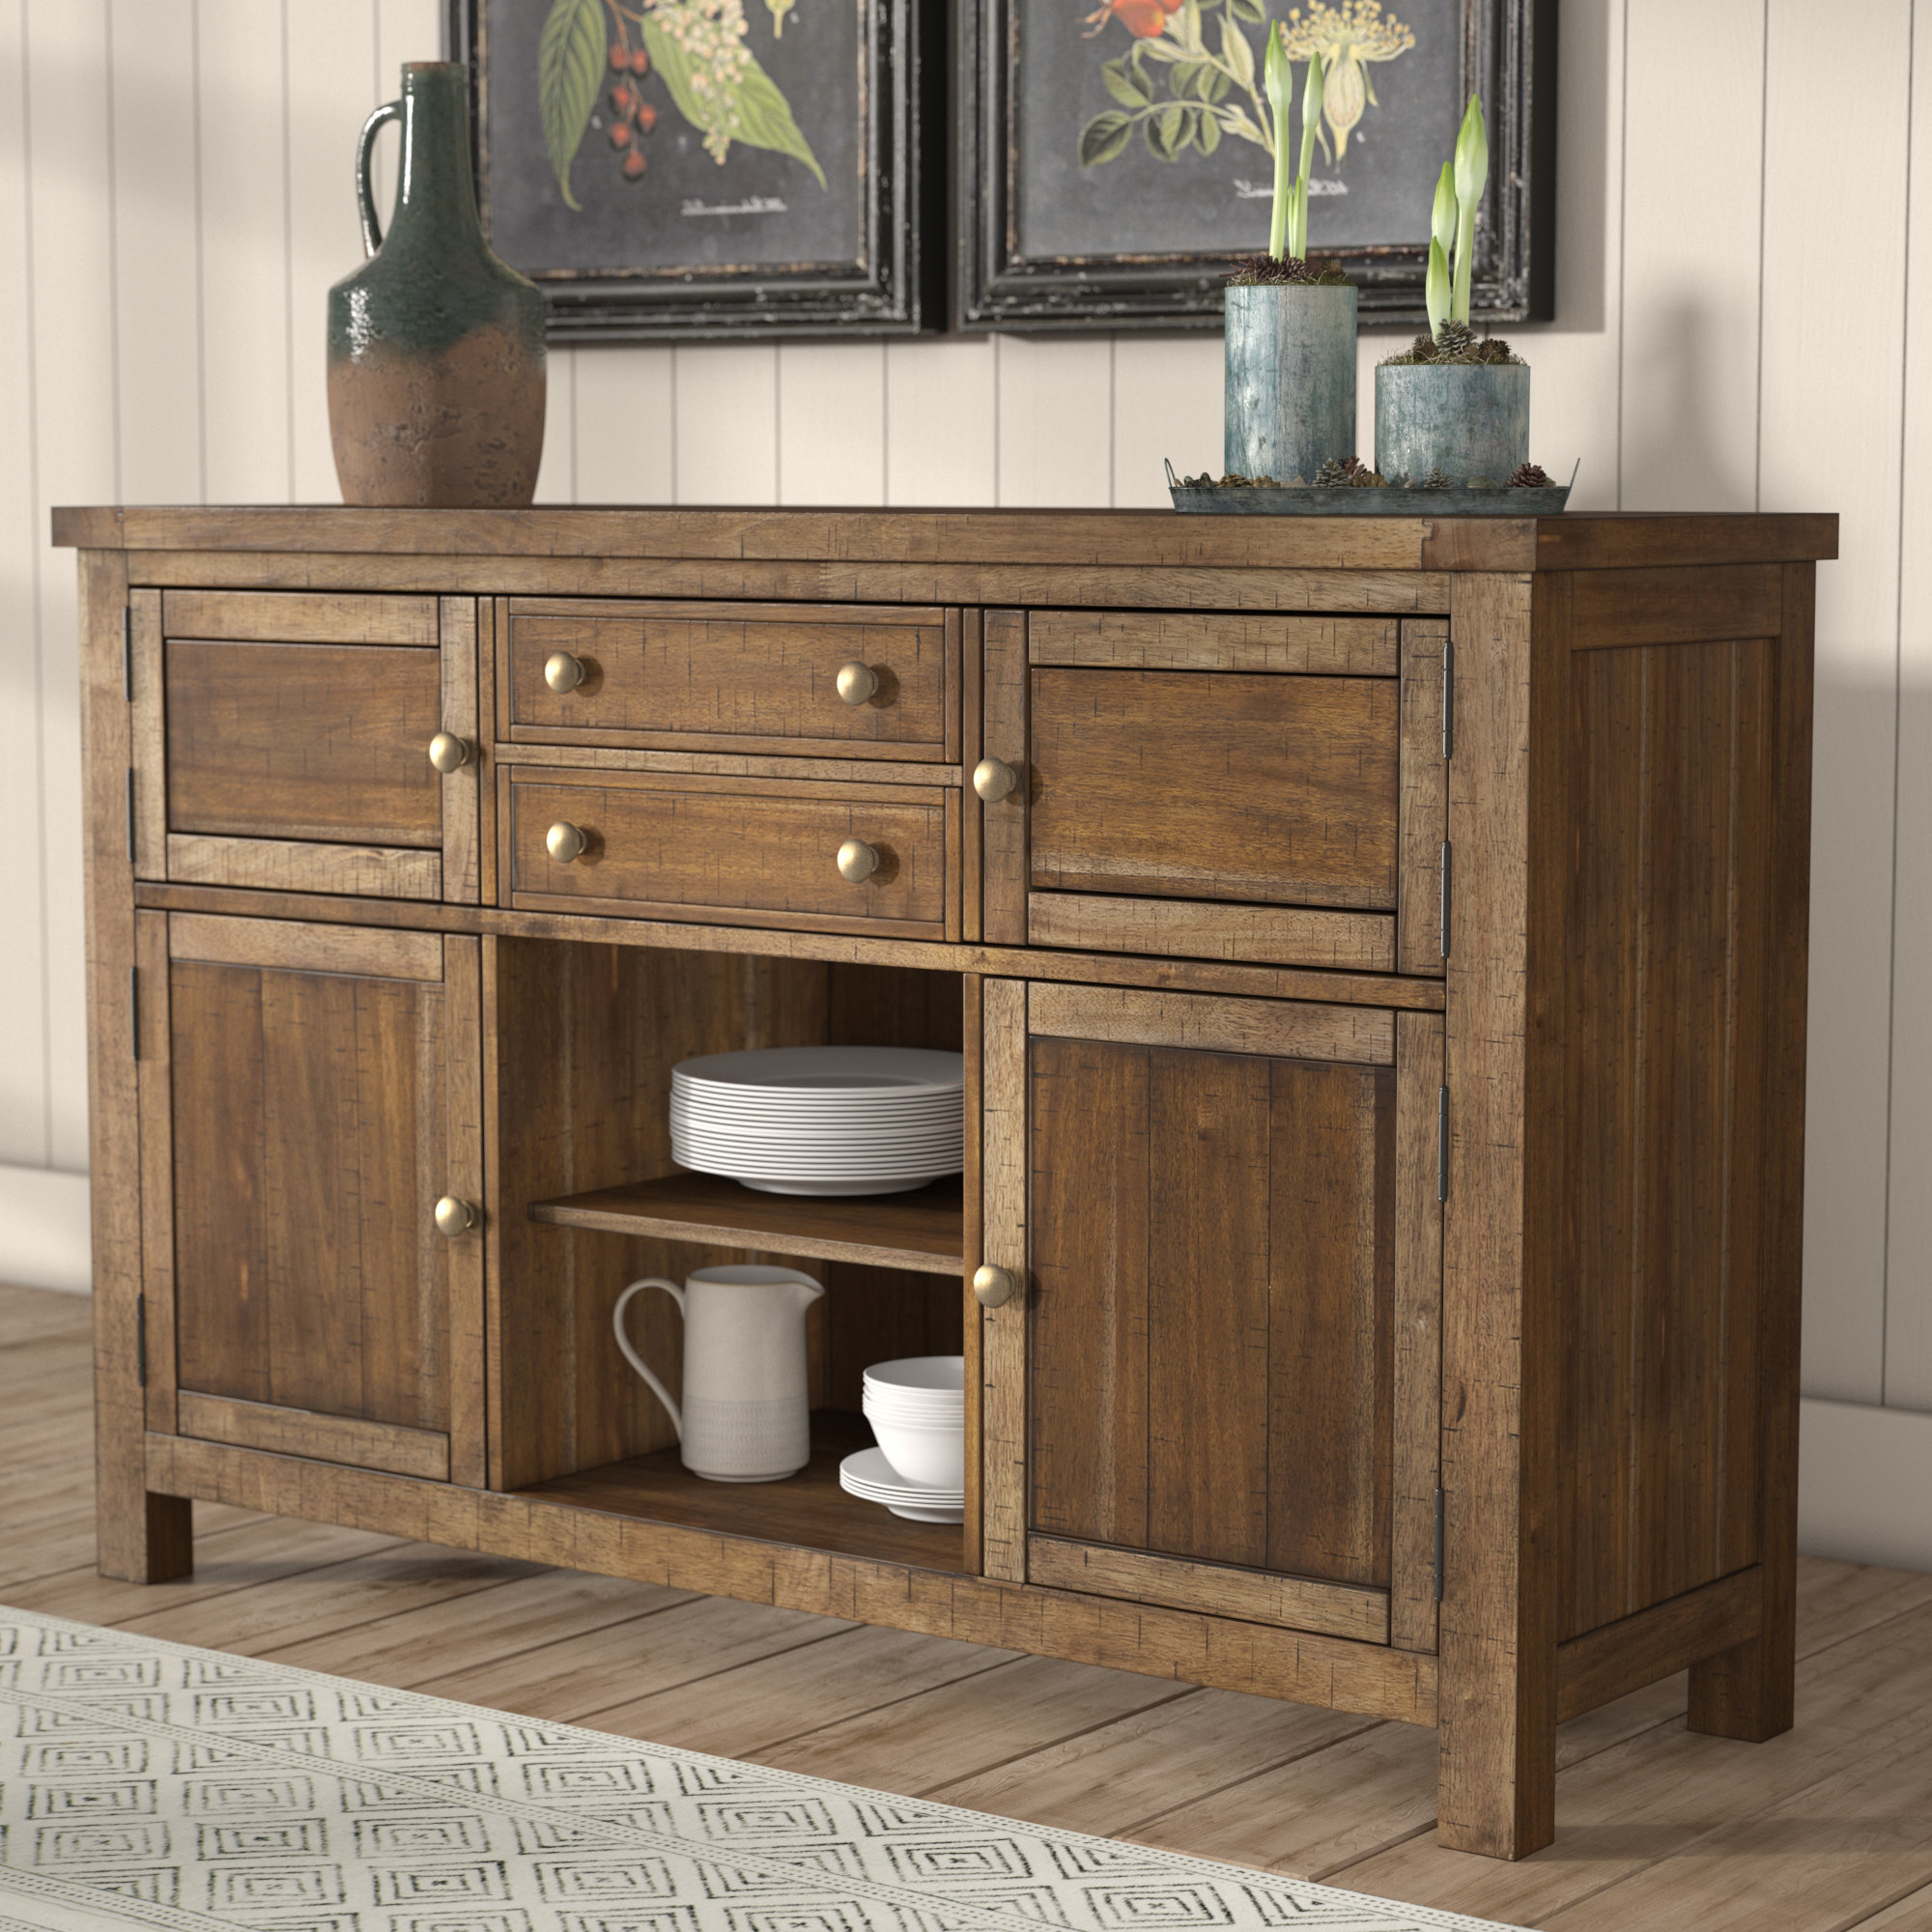 Laurel Foundry Modern Farmhouse Hillary Dining Room Buffet Pertaining To Saint Gratien Sideboards (View 16 of 20)